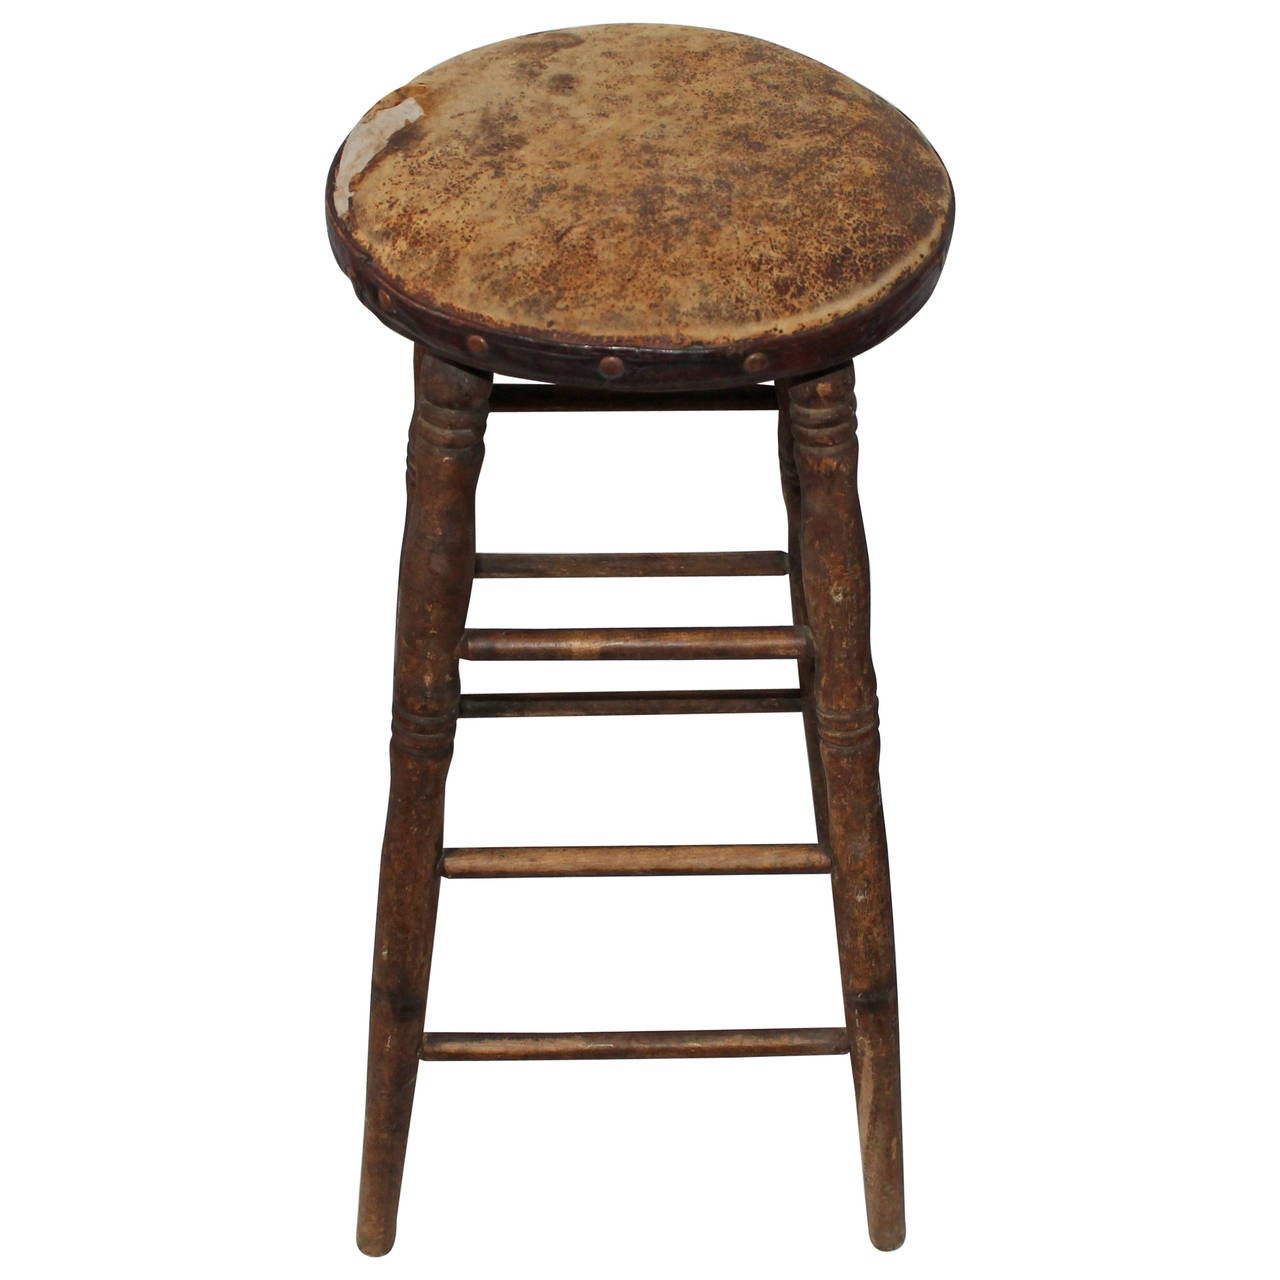 19th Century Original Old Surface Bar Stool With Leather